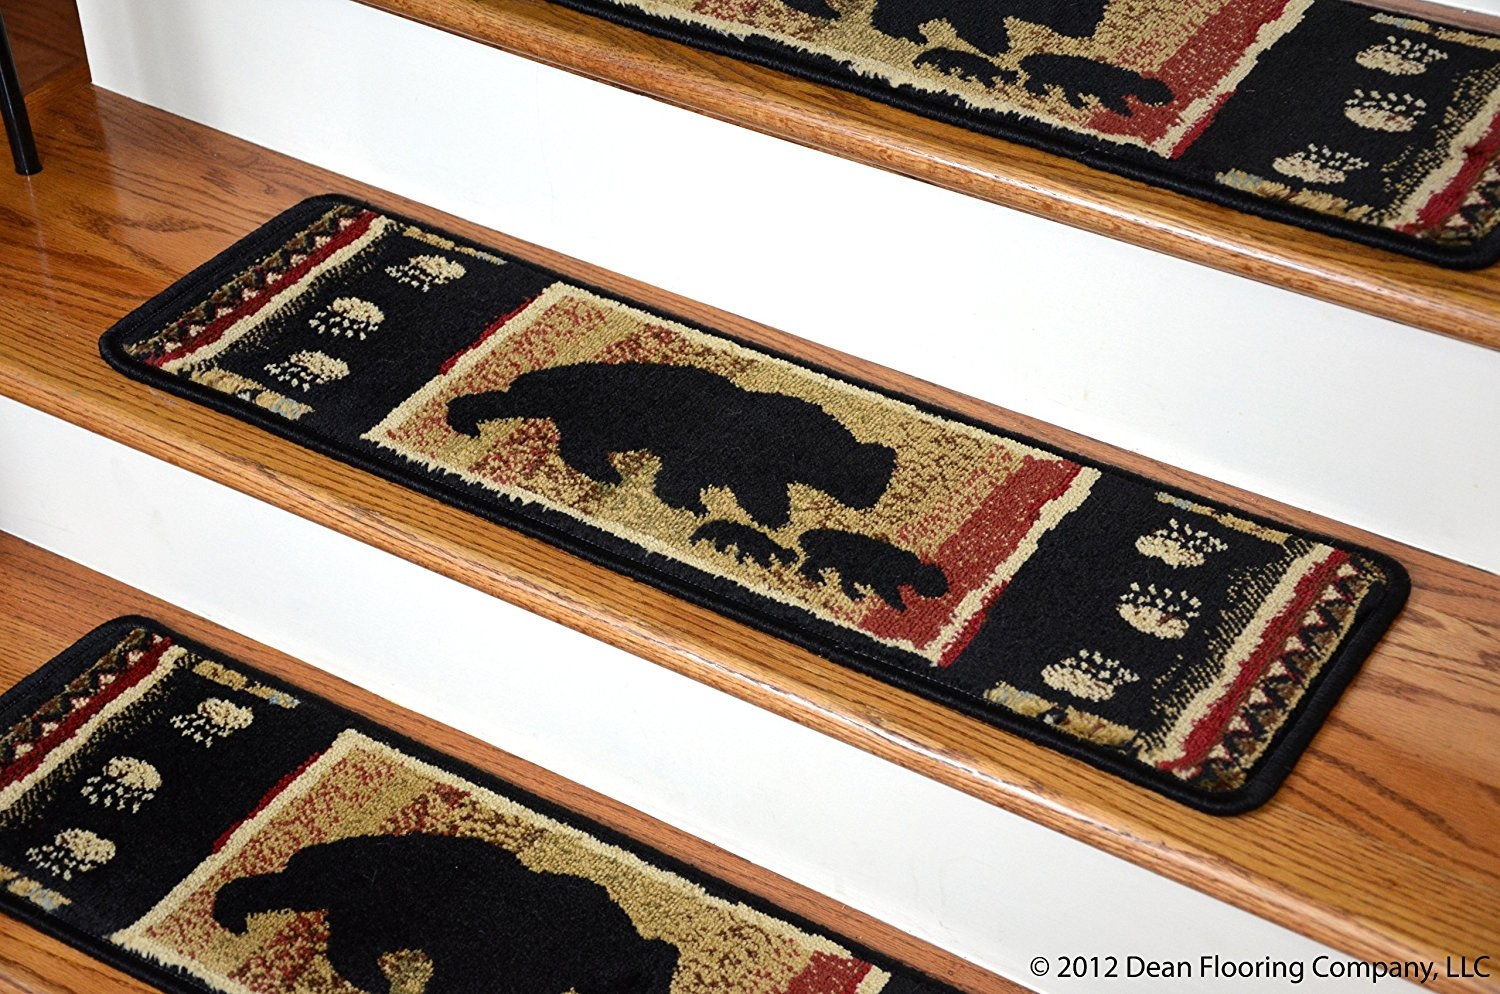 Dean Premium Carpet Stair Treads Black Bear Cabin 31 X 9 Set In Rustic Stair Tread Rugs (#10 of 20)